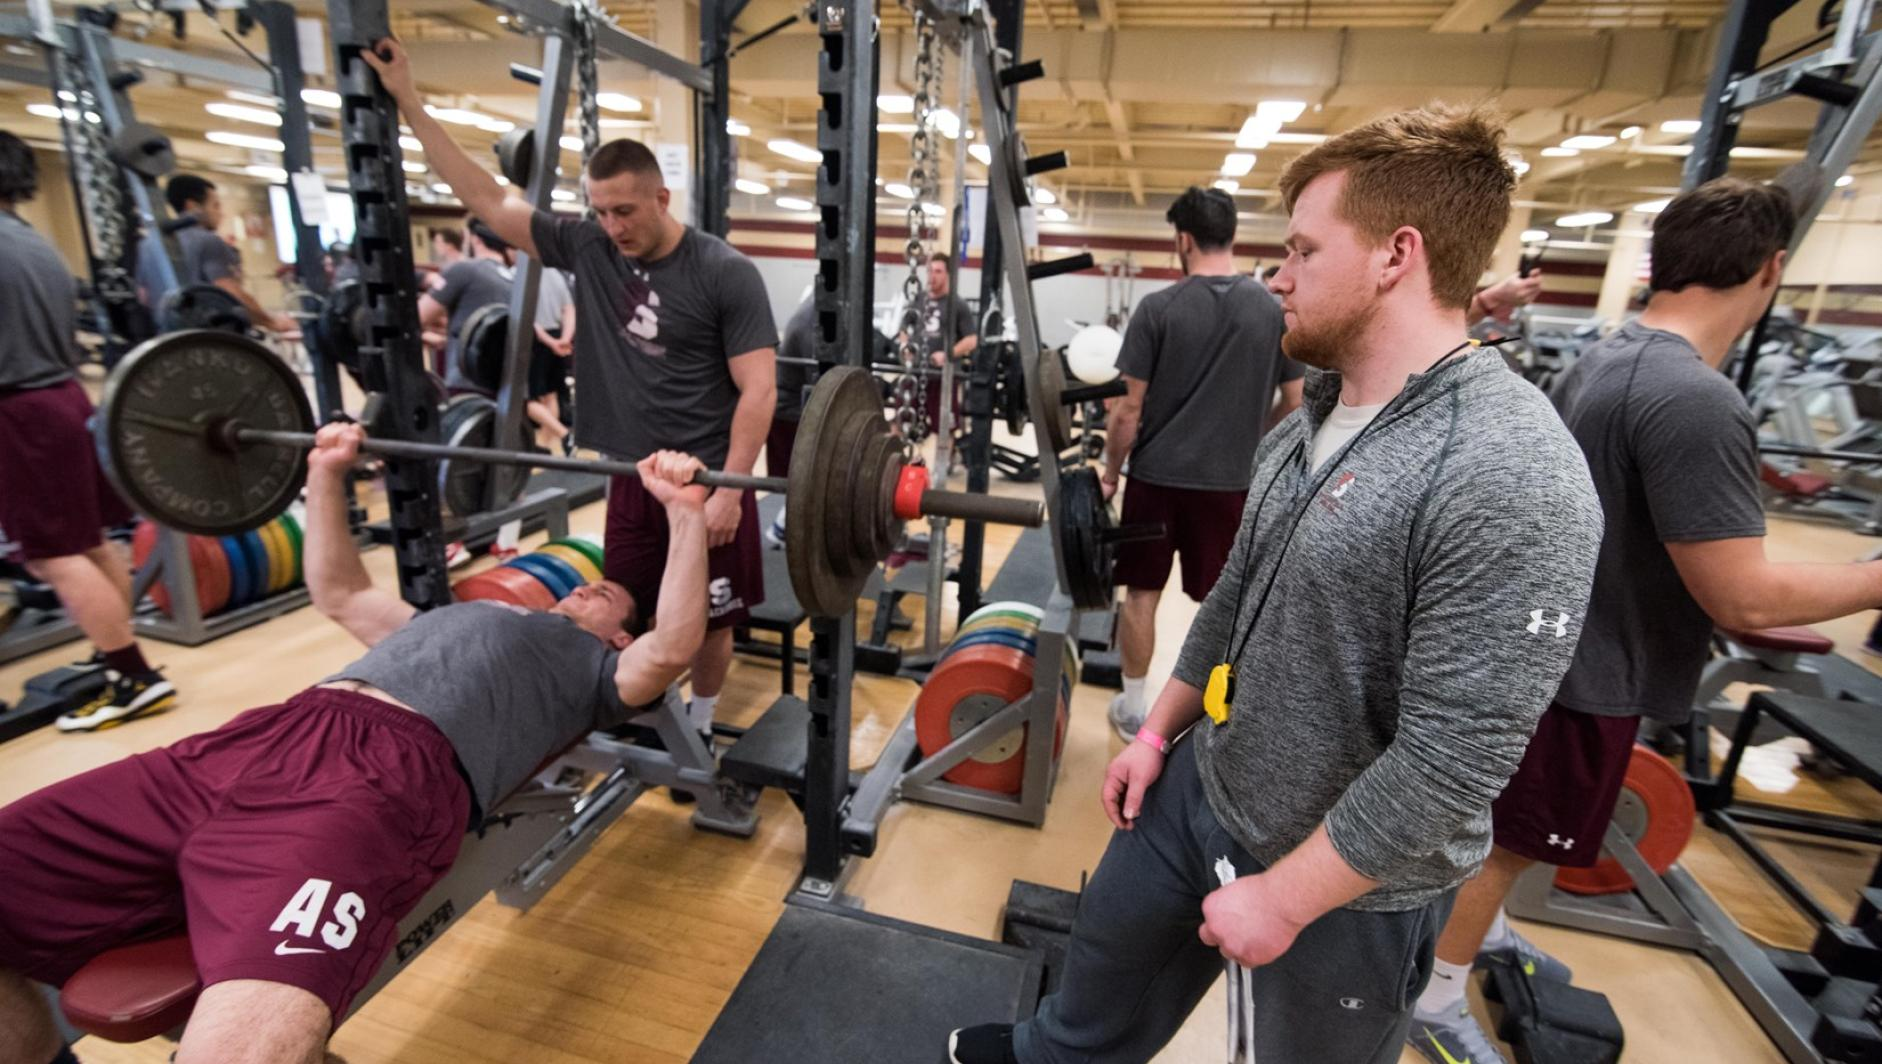 A student strength and conditioning coach looks on as his client does a chest press.